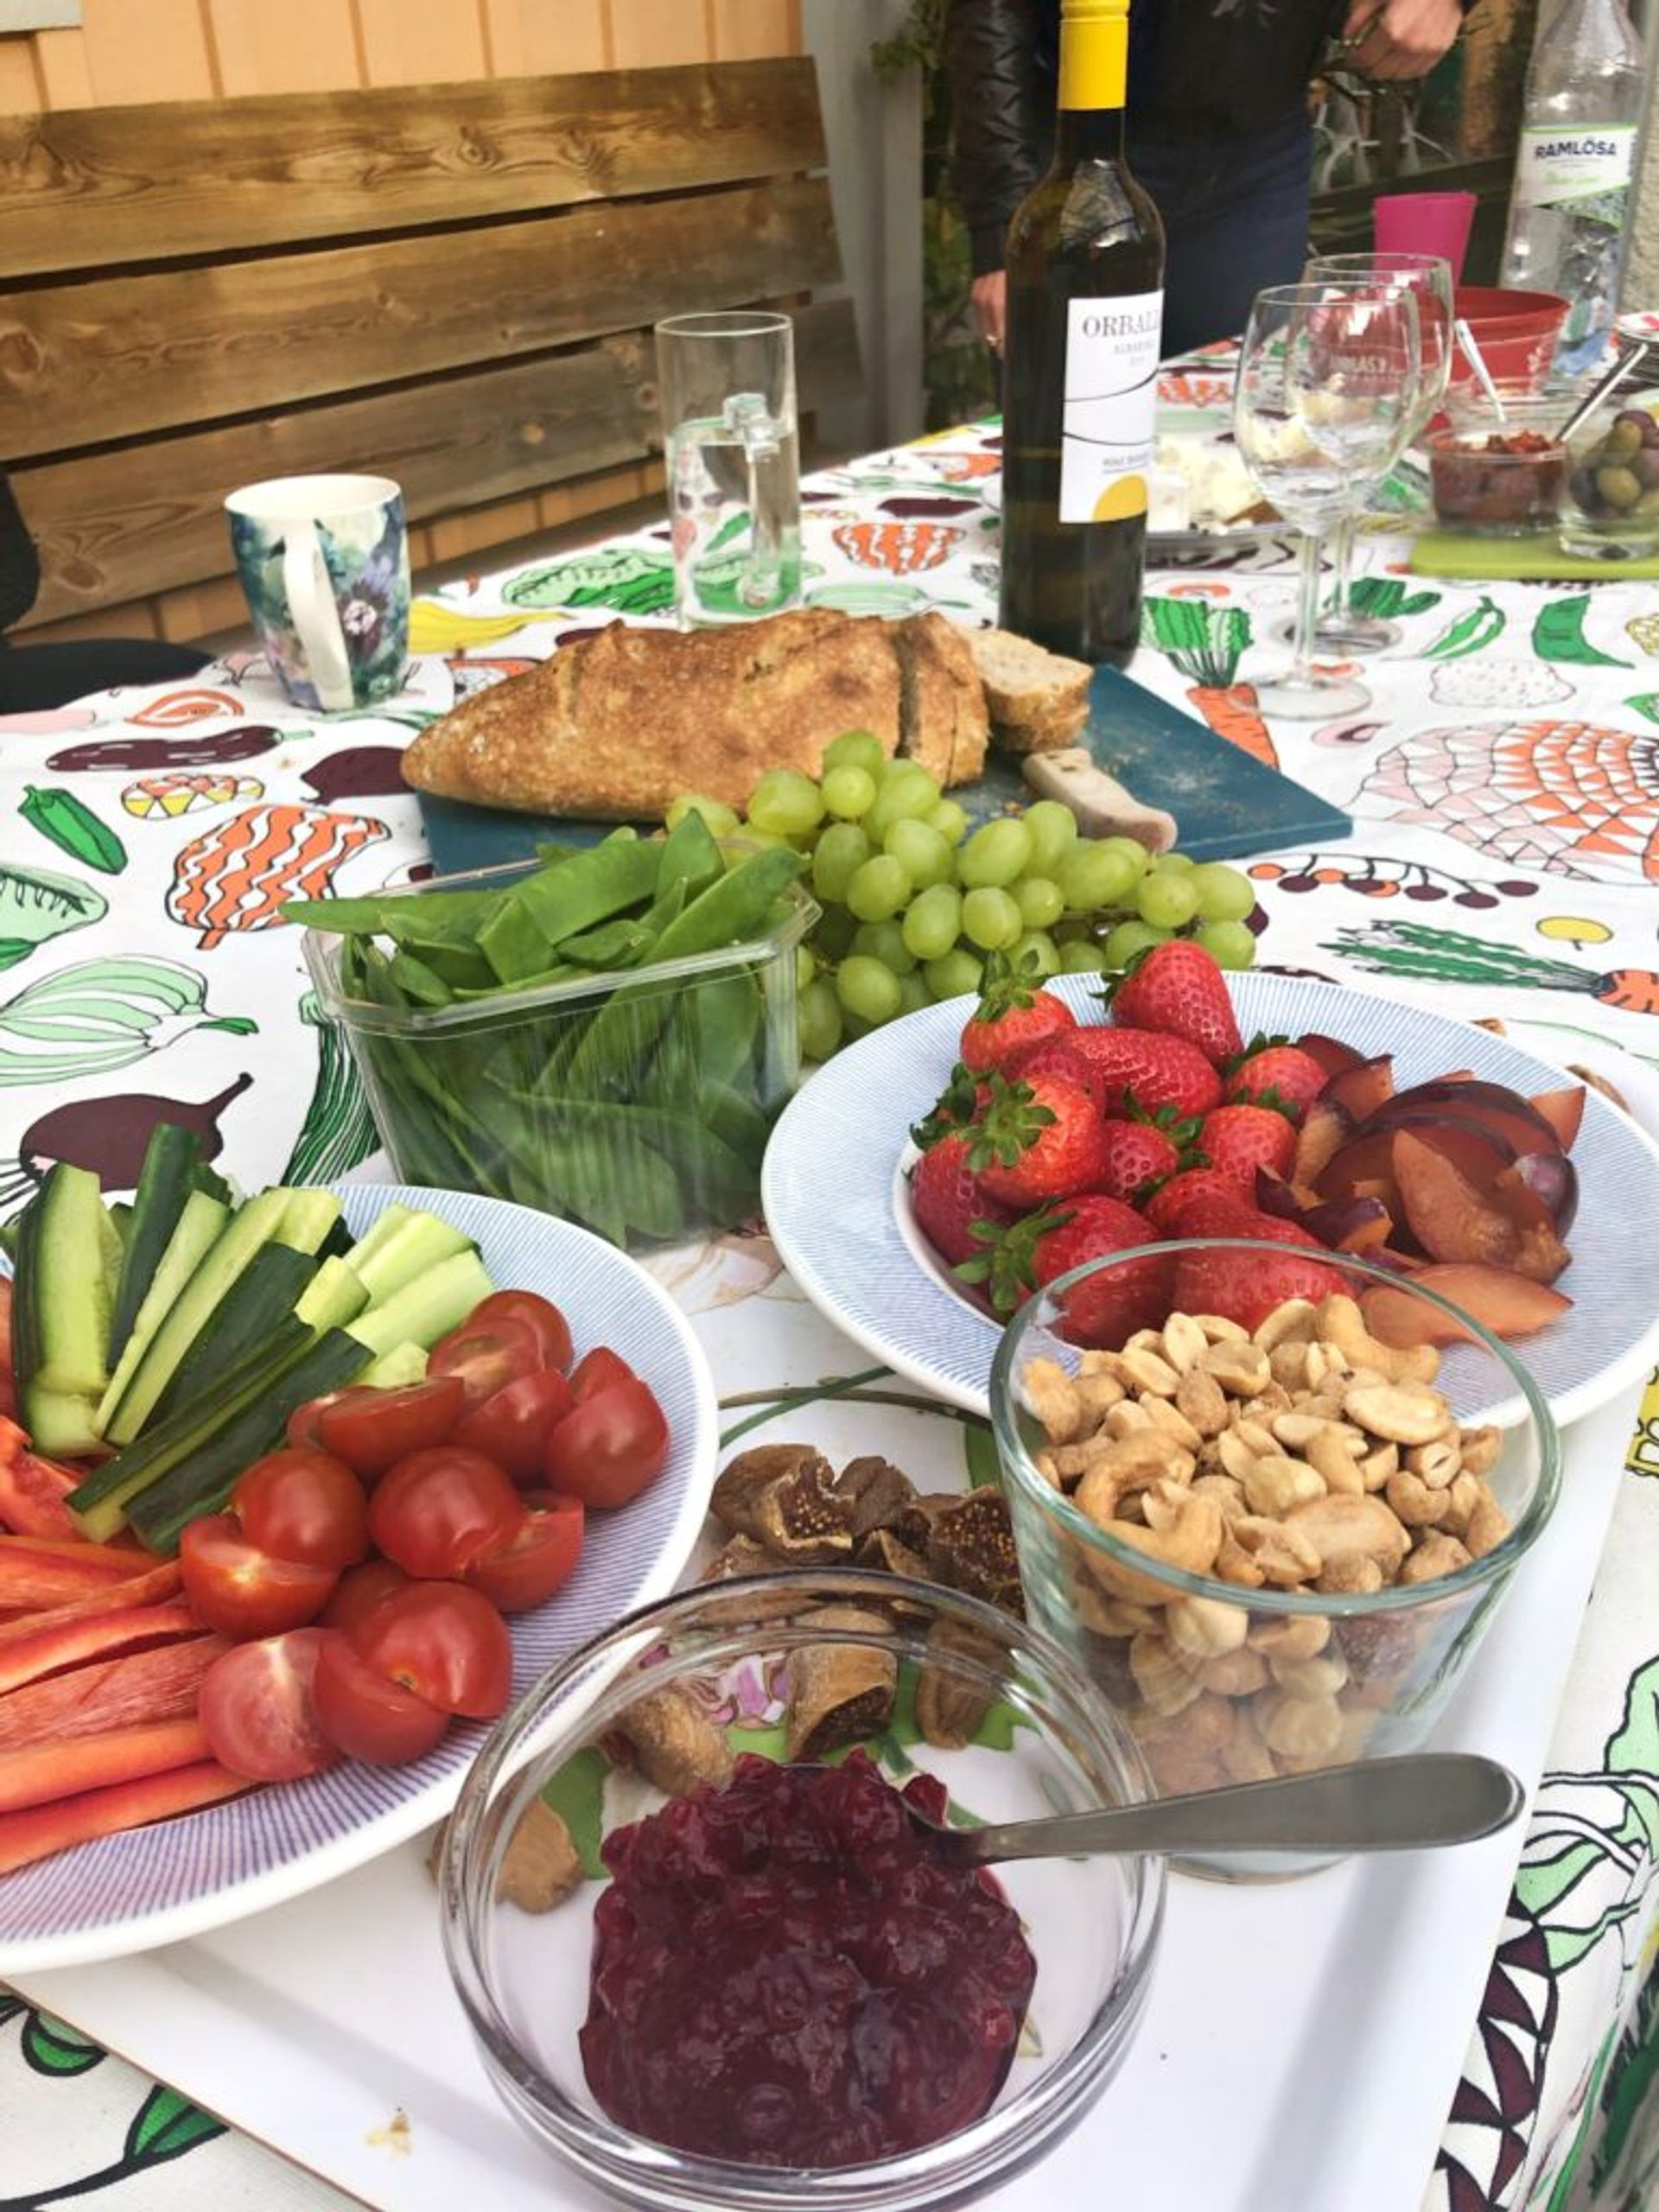 A table outside covered in plates of fresh fruit and vegetables.